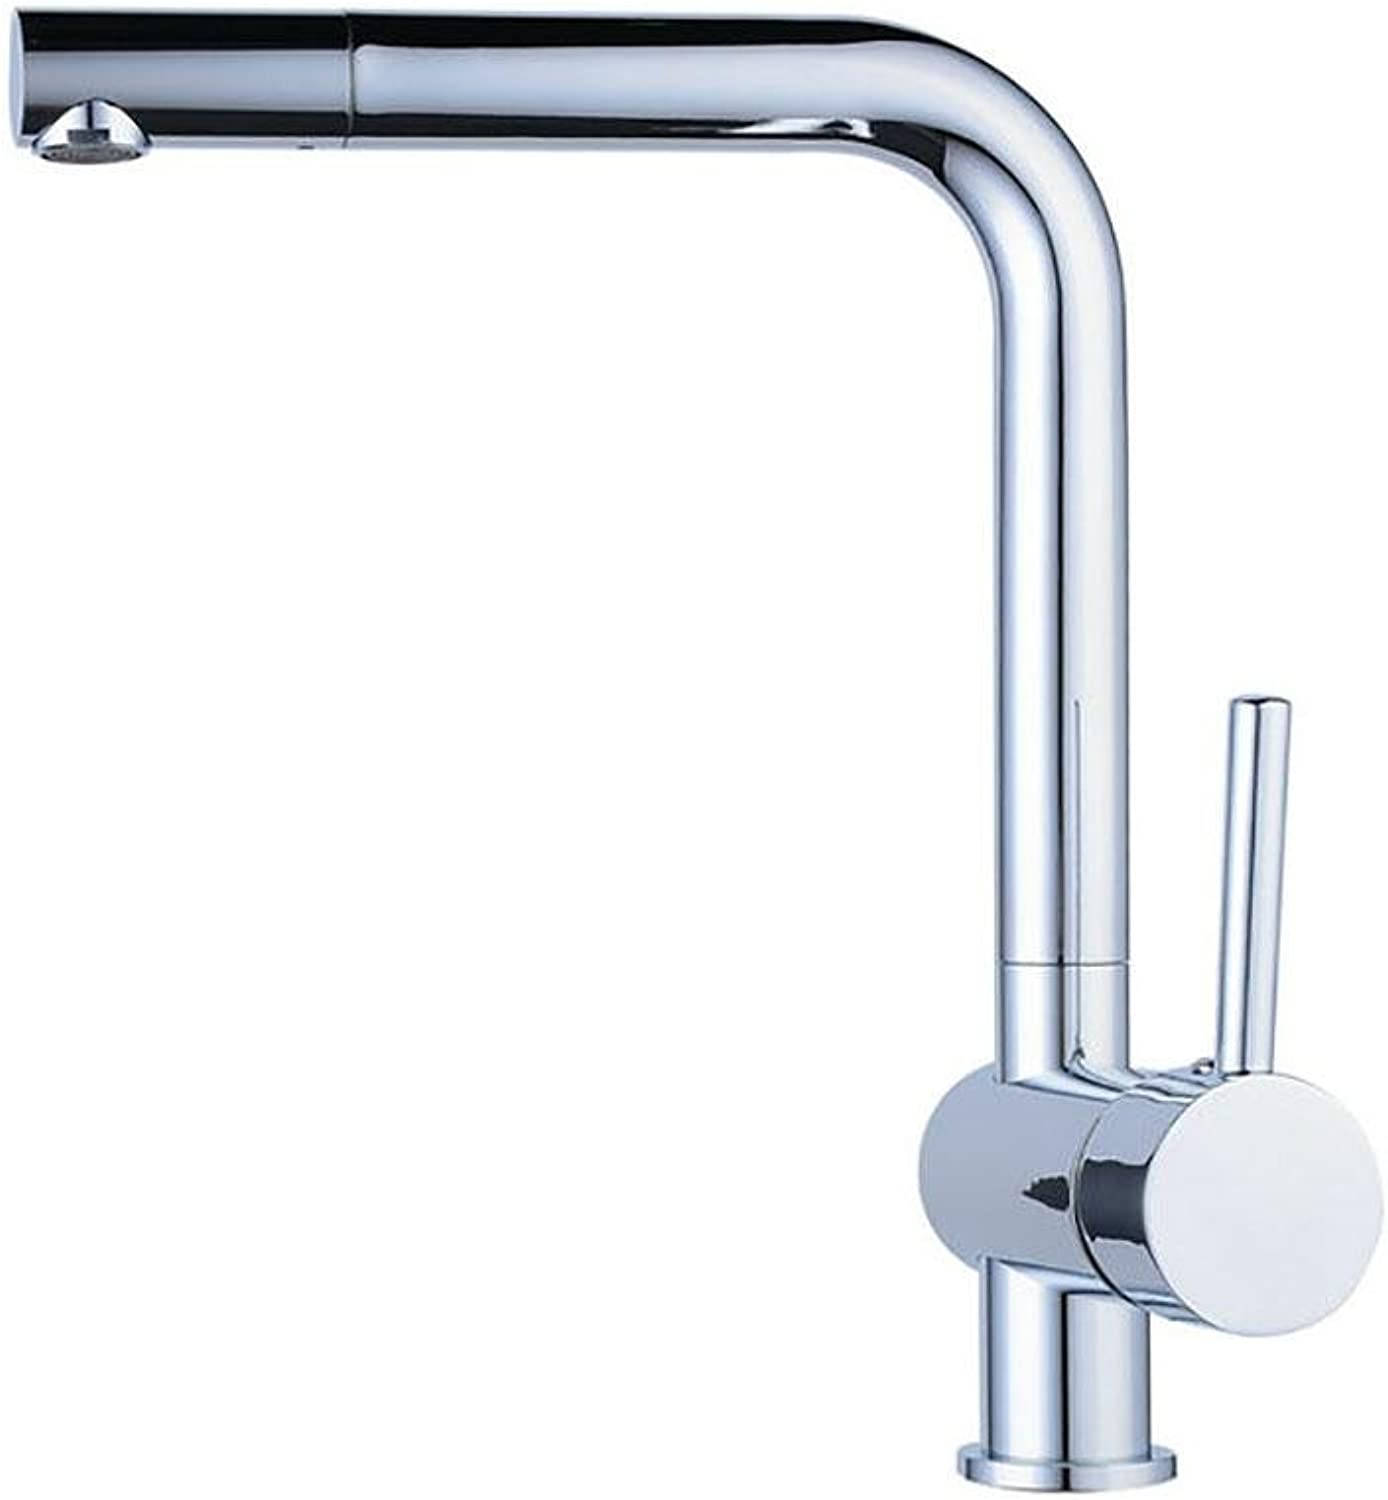 PLYY Contemporary Brass Kitchen Single Handle Single Hole Mixer Taps 360 Degree Deck Mounted Hot & Cold Ceramic Cartridge Sink Faucet Polished Chrome